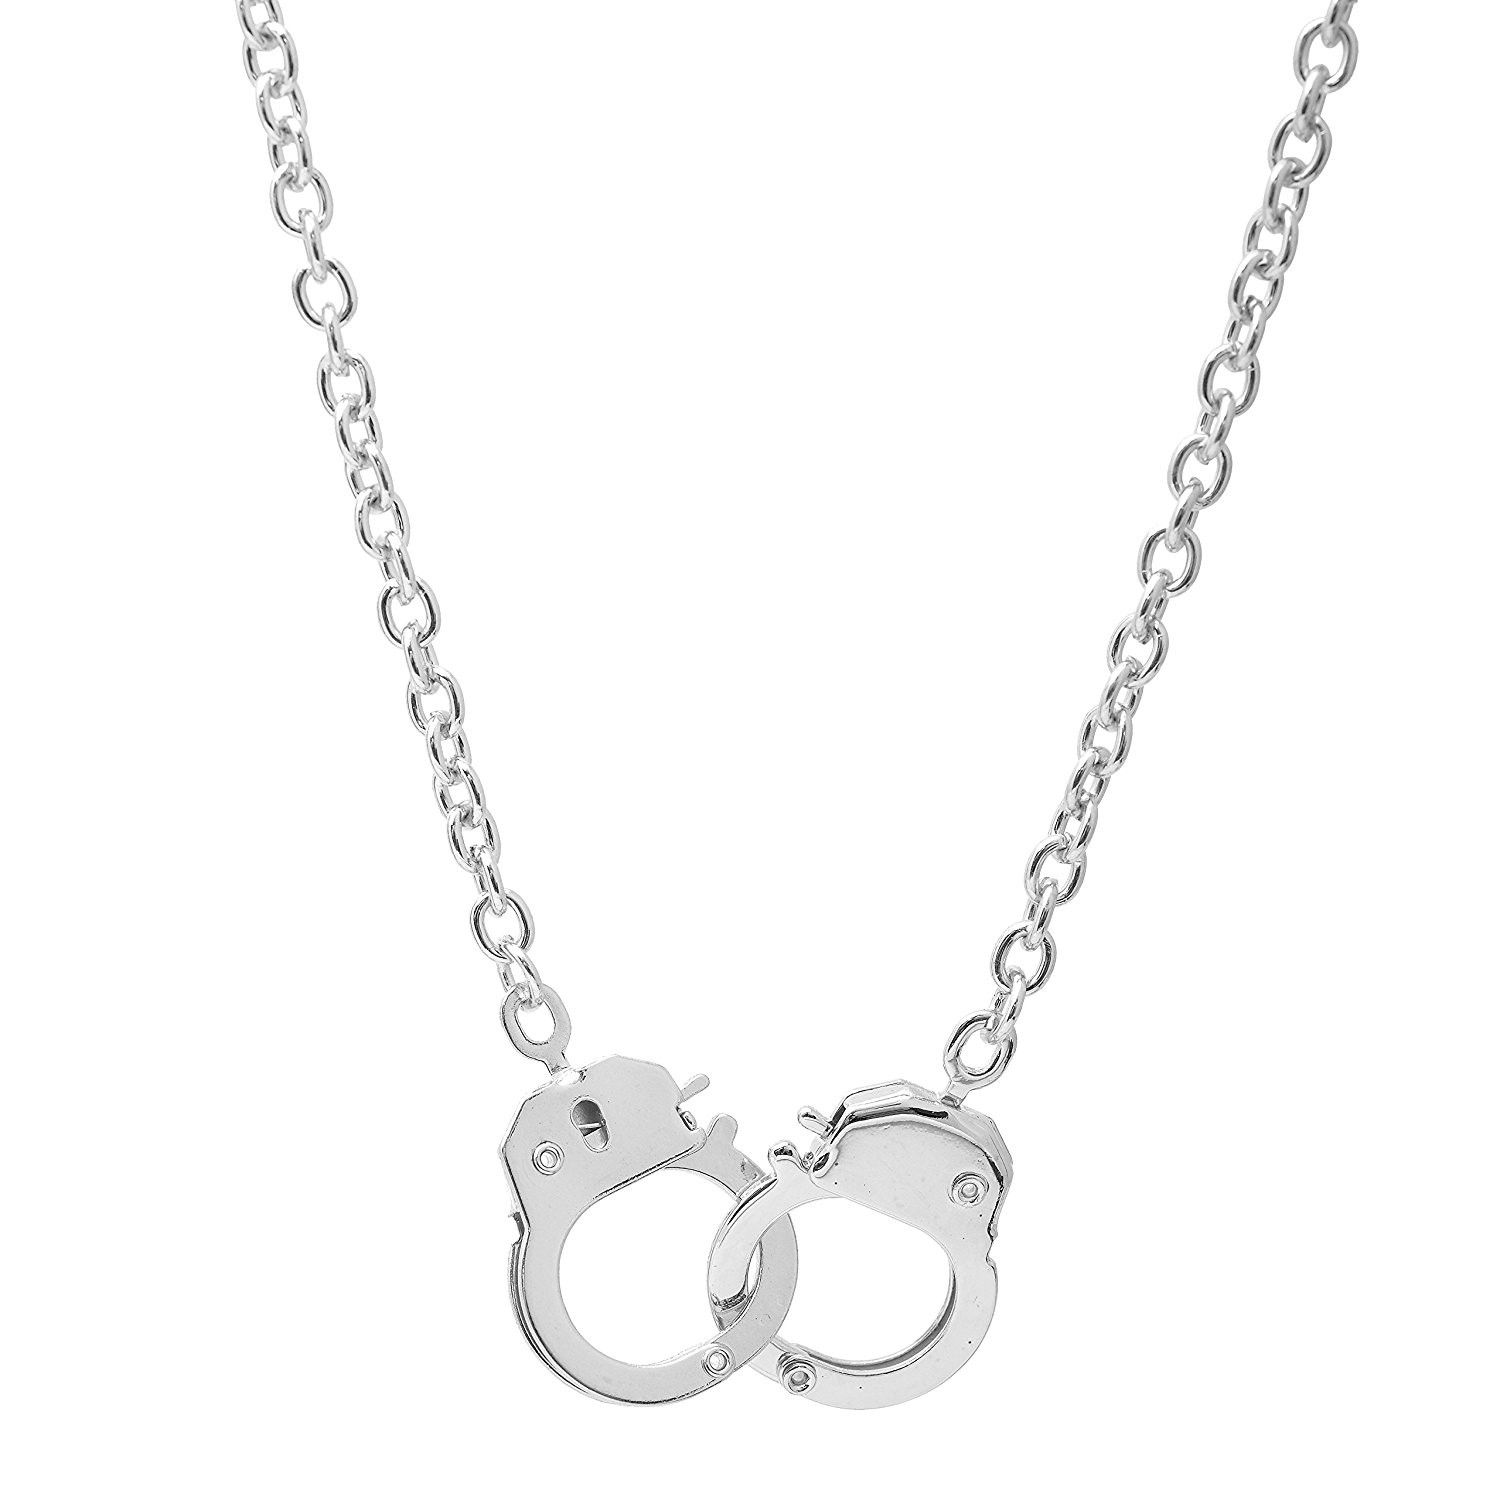 Rose Gold Tone over Sterling Silver Polished Handcuff Necklace